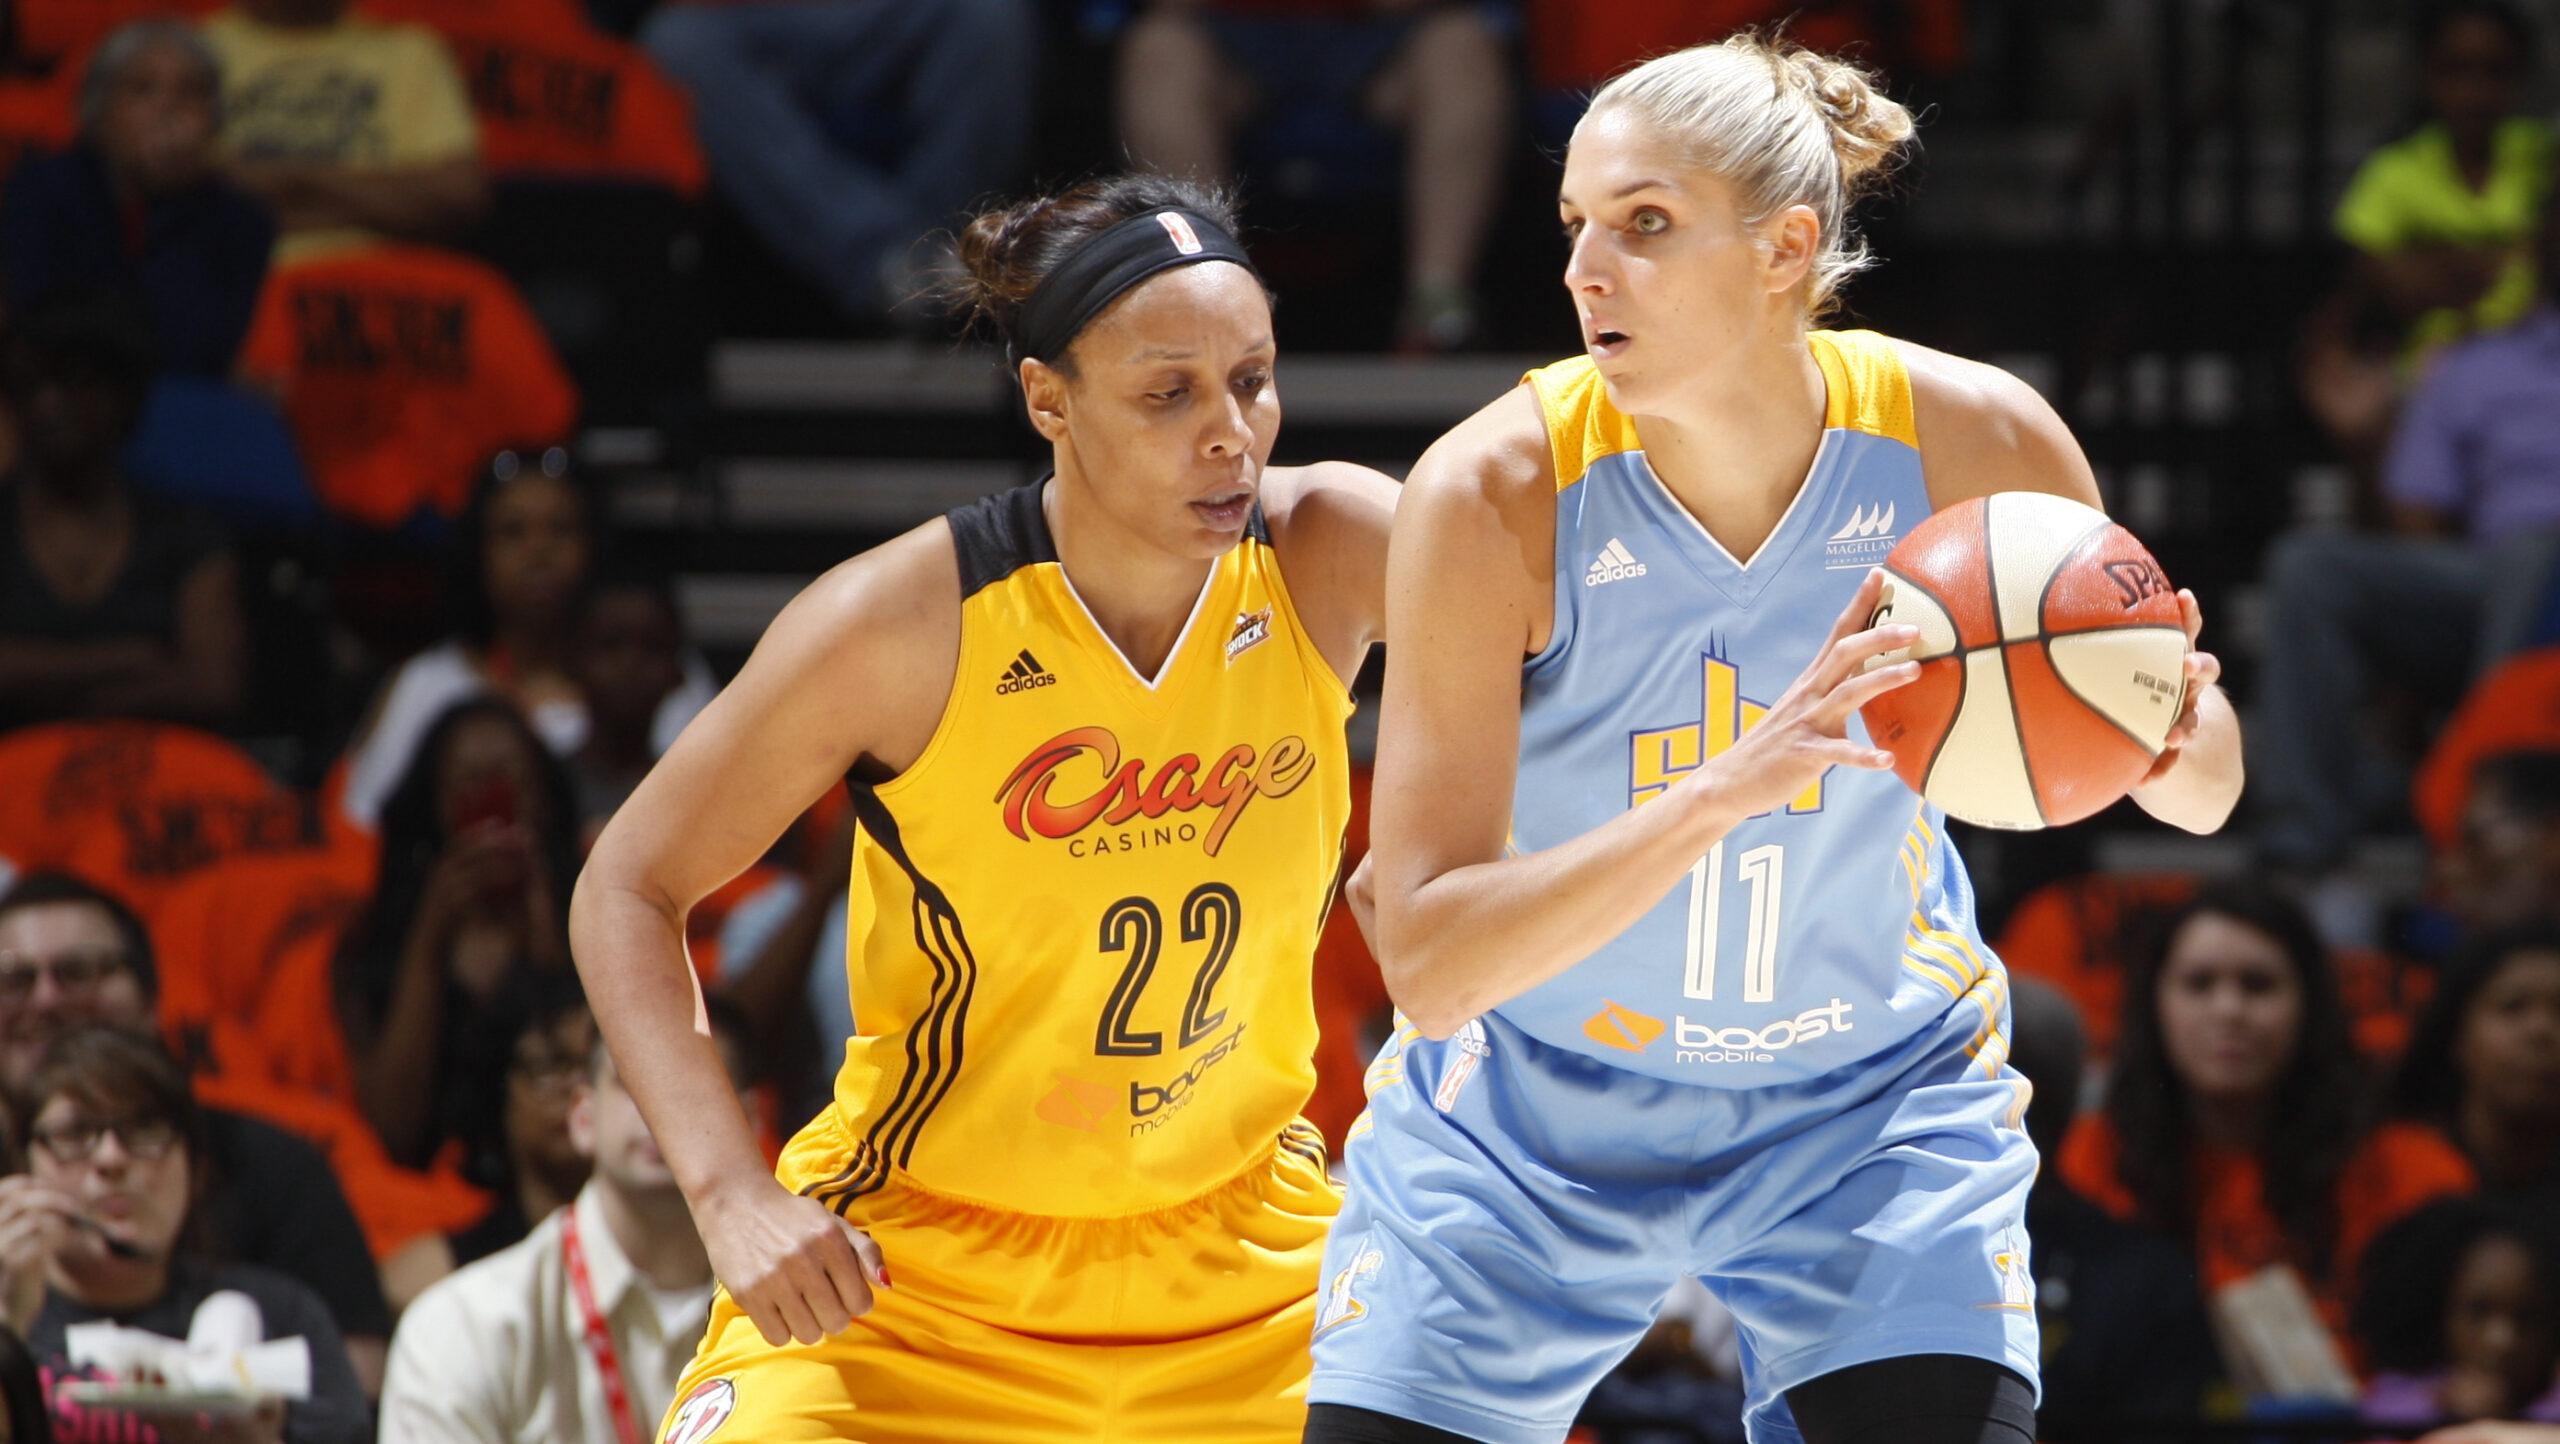 2015 All-Star weekend: Tulsa Shock move to Dallas is the buzz, players voice their opinions